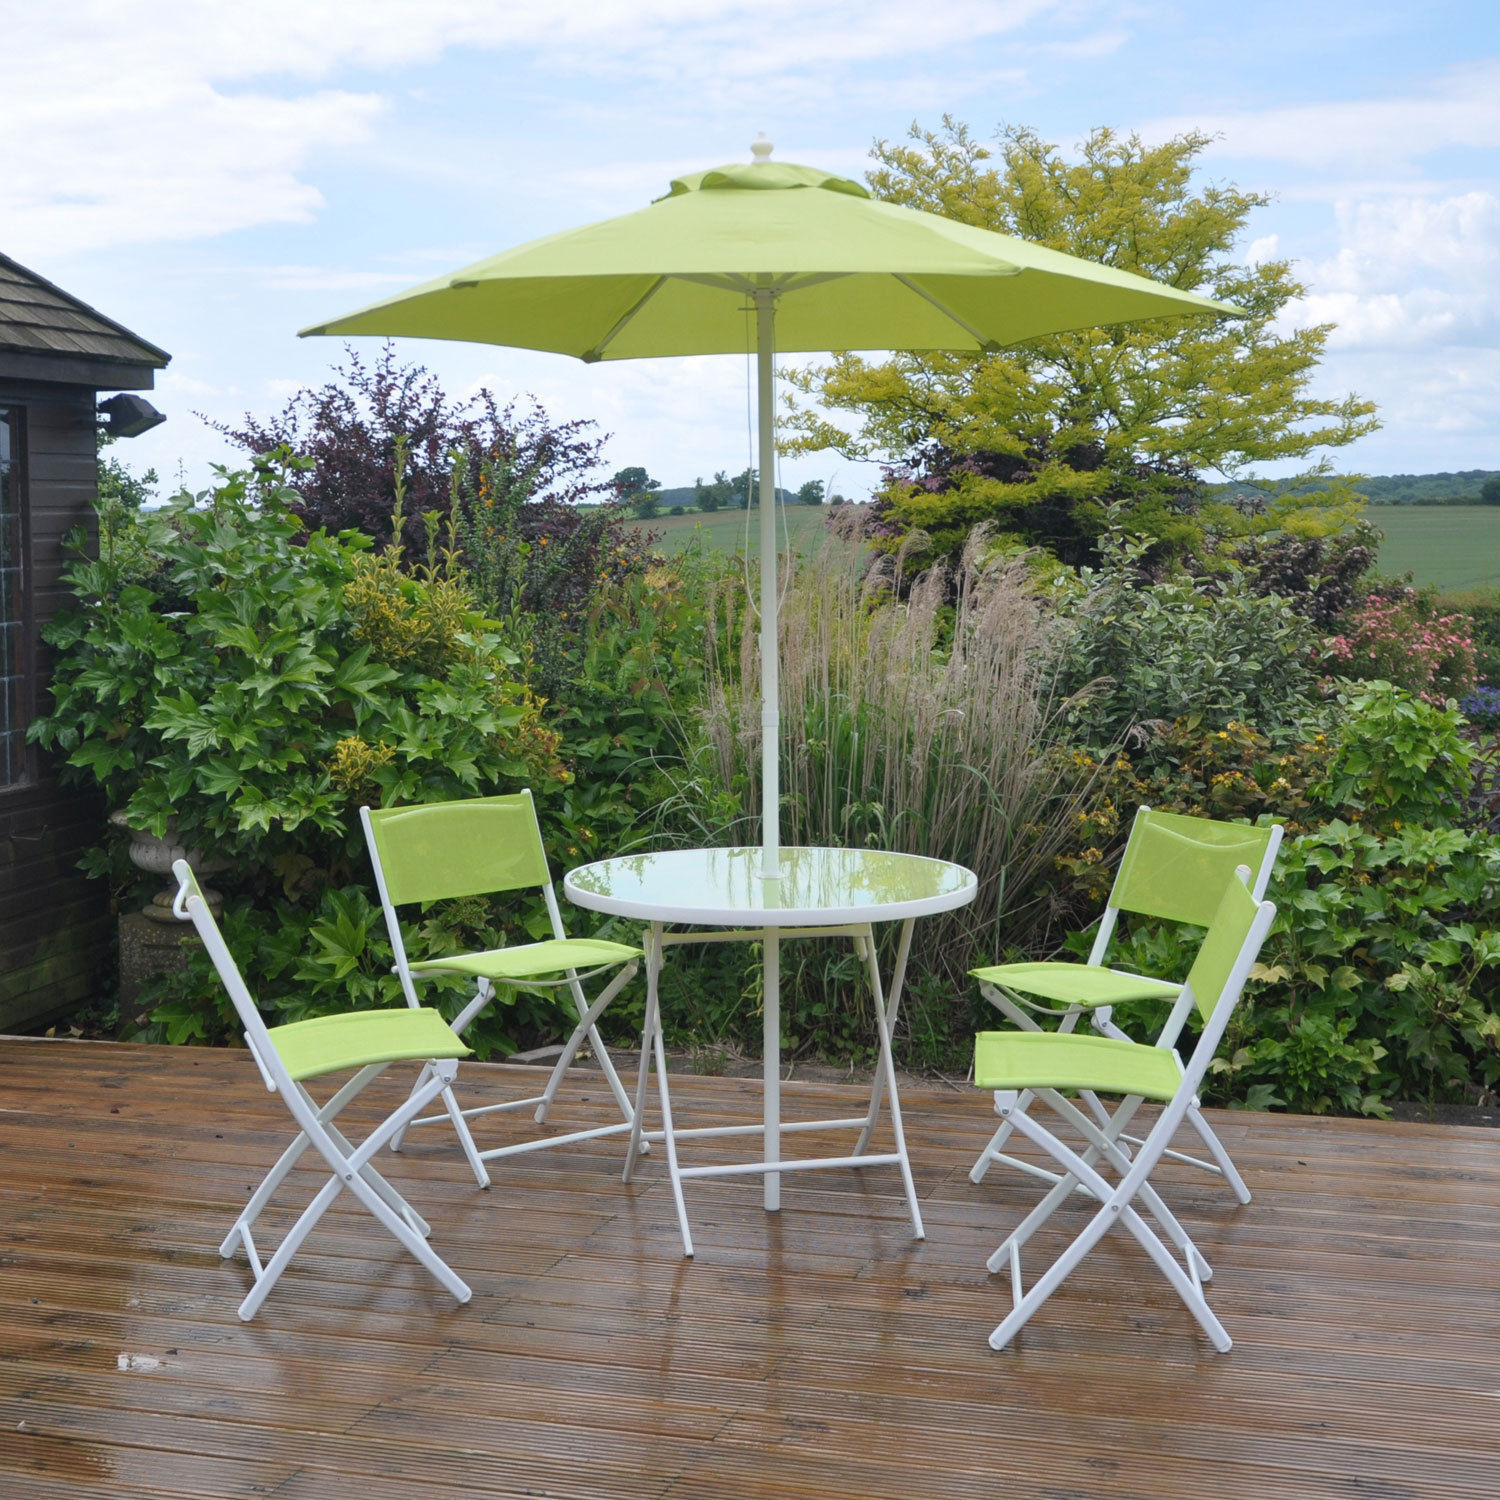 6pc Lime Green Garden Patio Furniture Set Dining Set  : 57 from www.ebay.ie size 1500 x 1500 jpeg 491kB